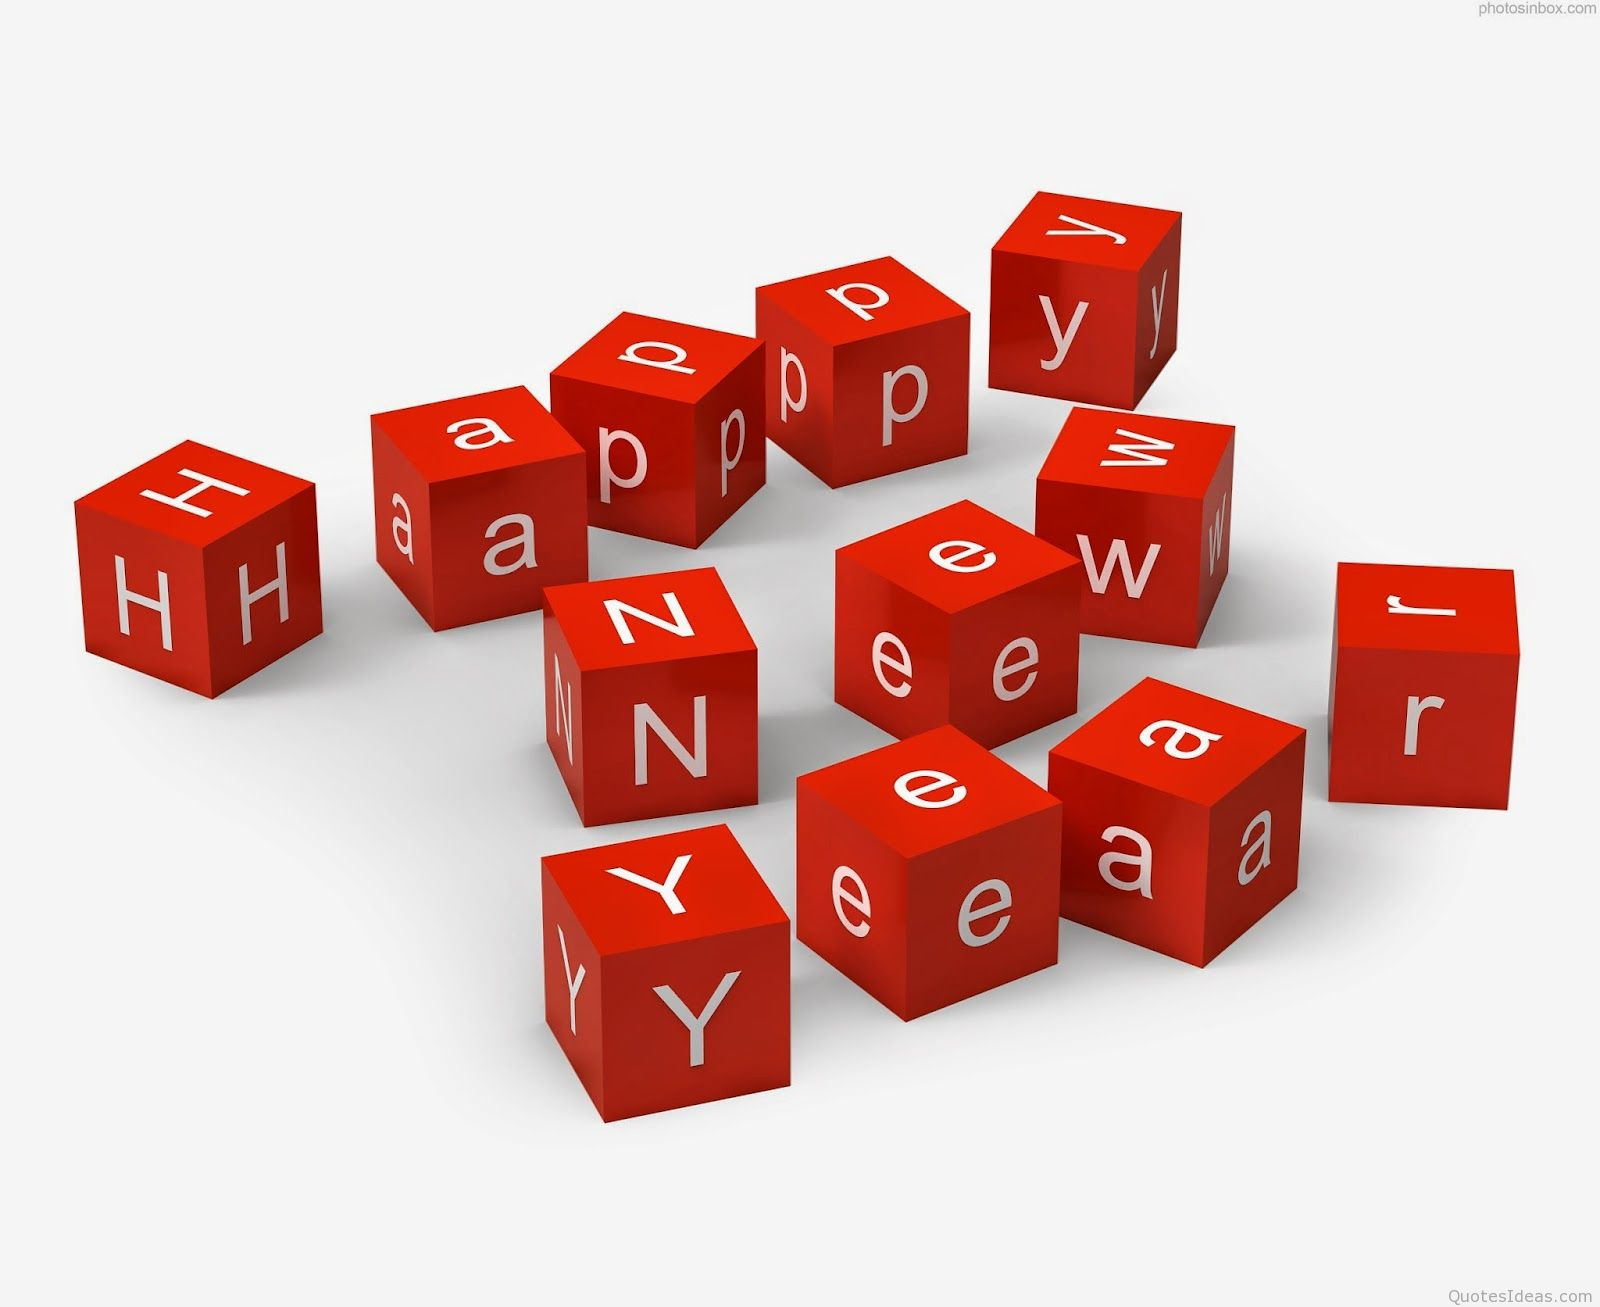 Happy New Year- New Year Beauty Resolutions